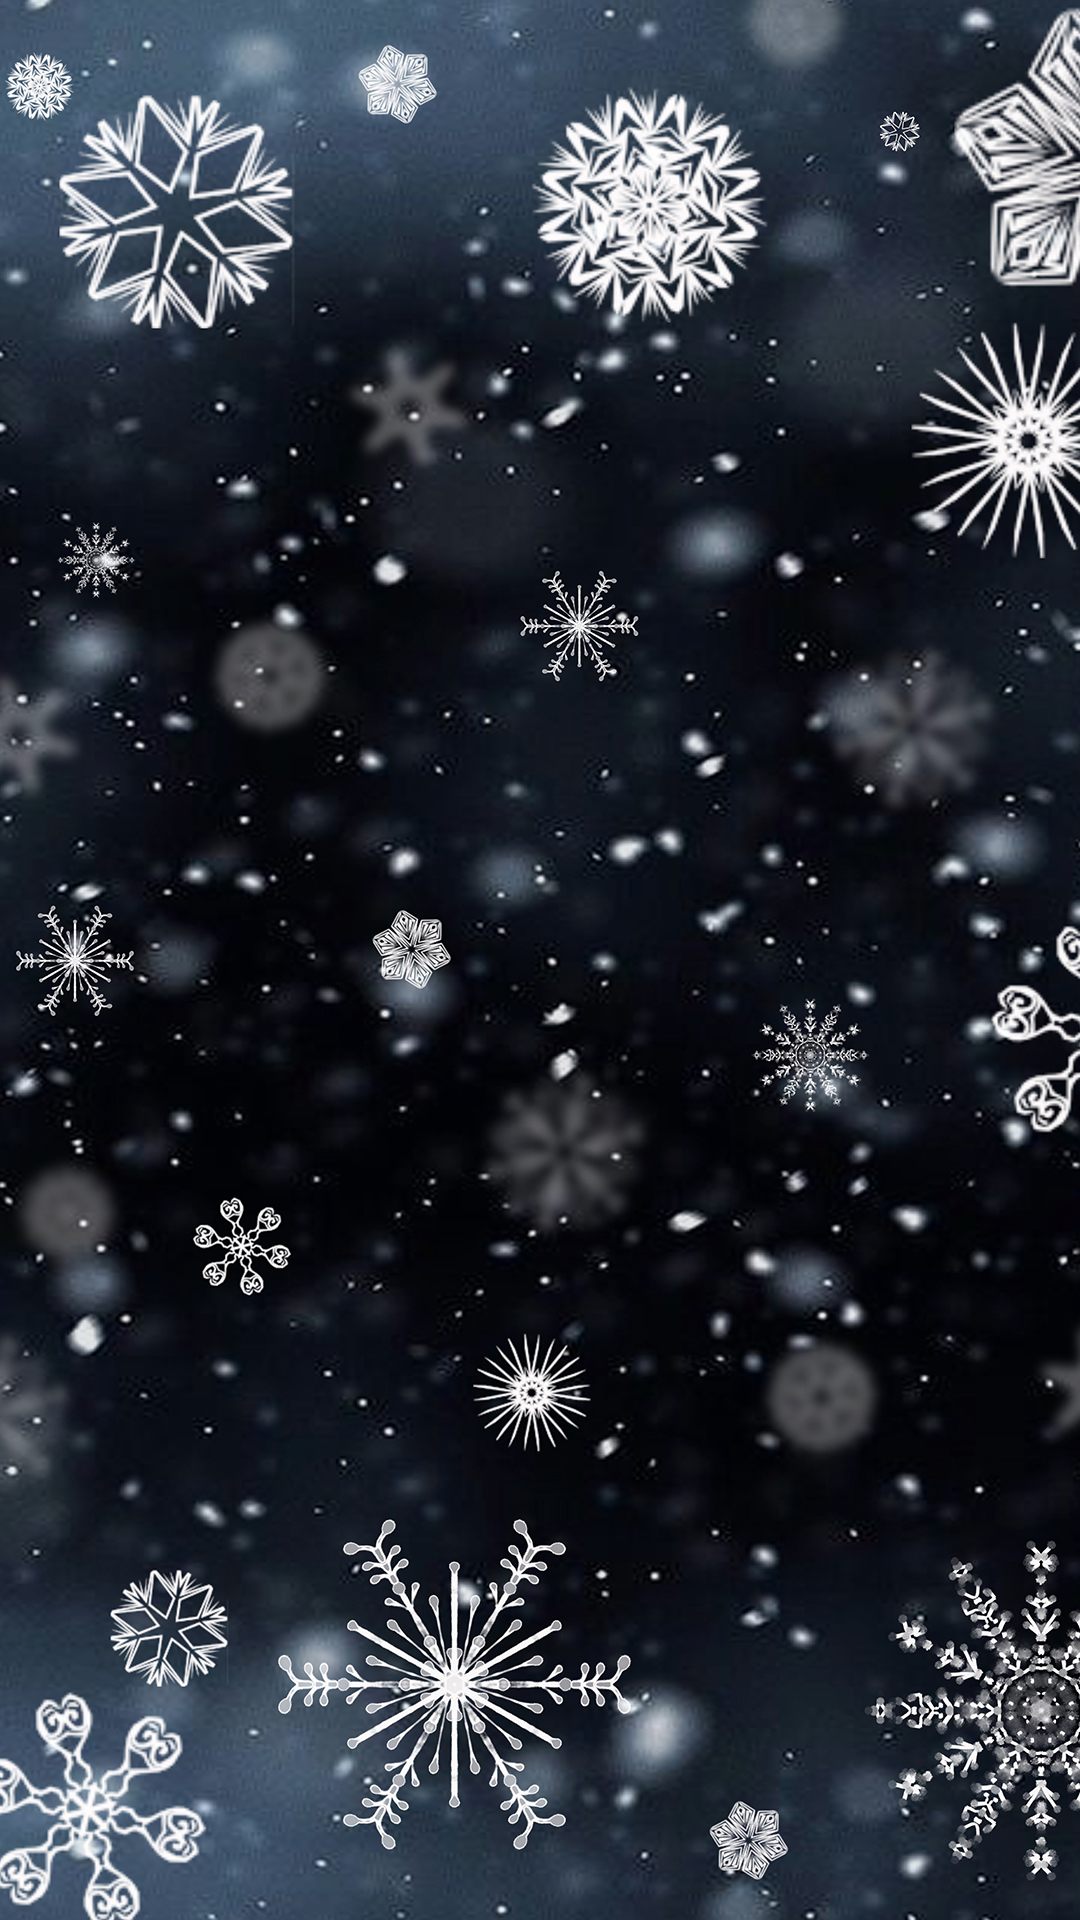 Snowflake Iphone Wallpapers Top Free Snowflake Iphone Backgrounds Wallpaperaccess